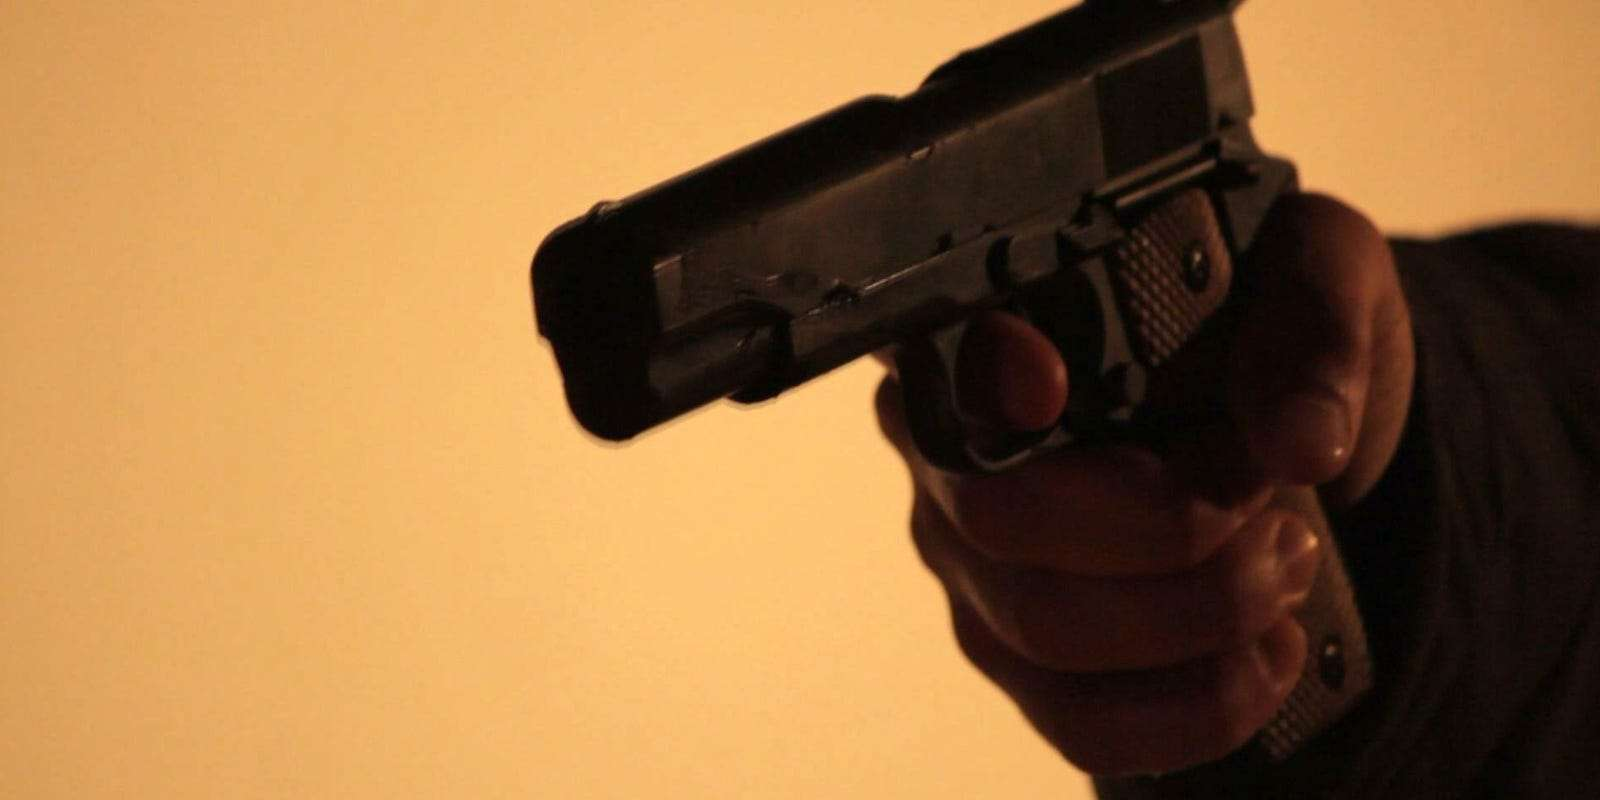 JCF Denies Involvement in New Year's Morning Shooting in Kingston